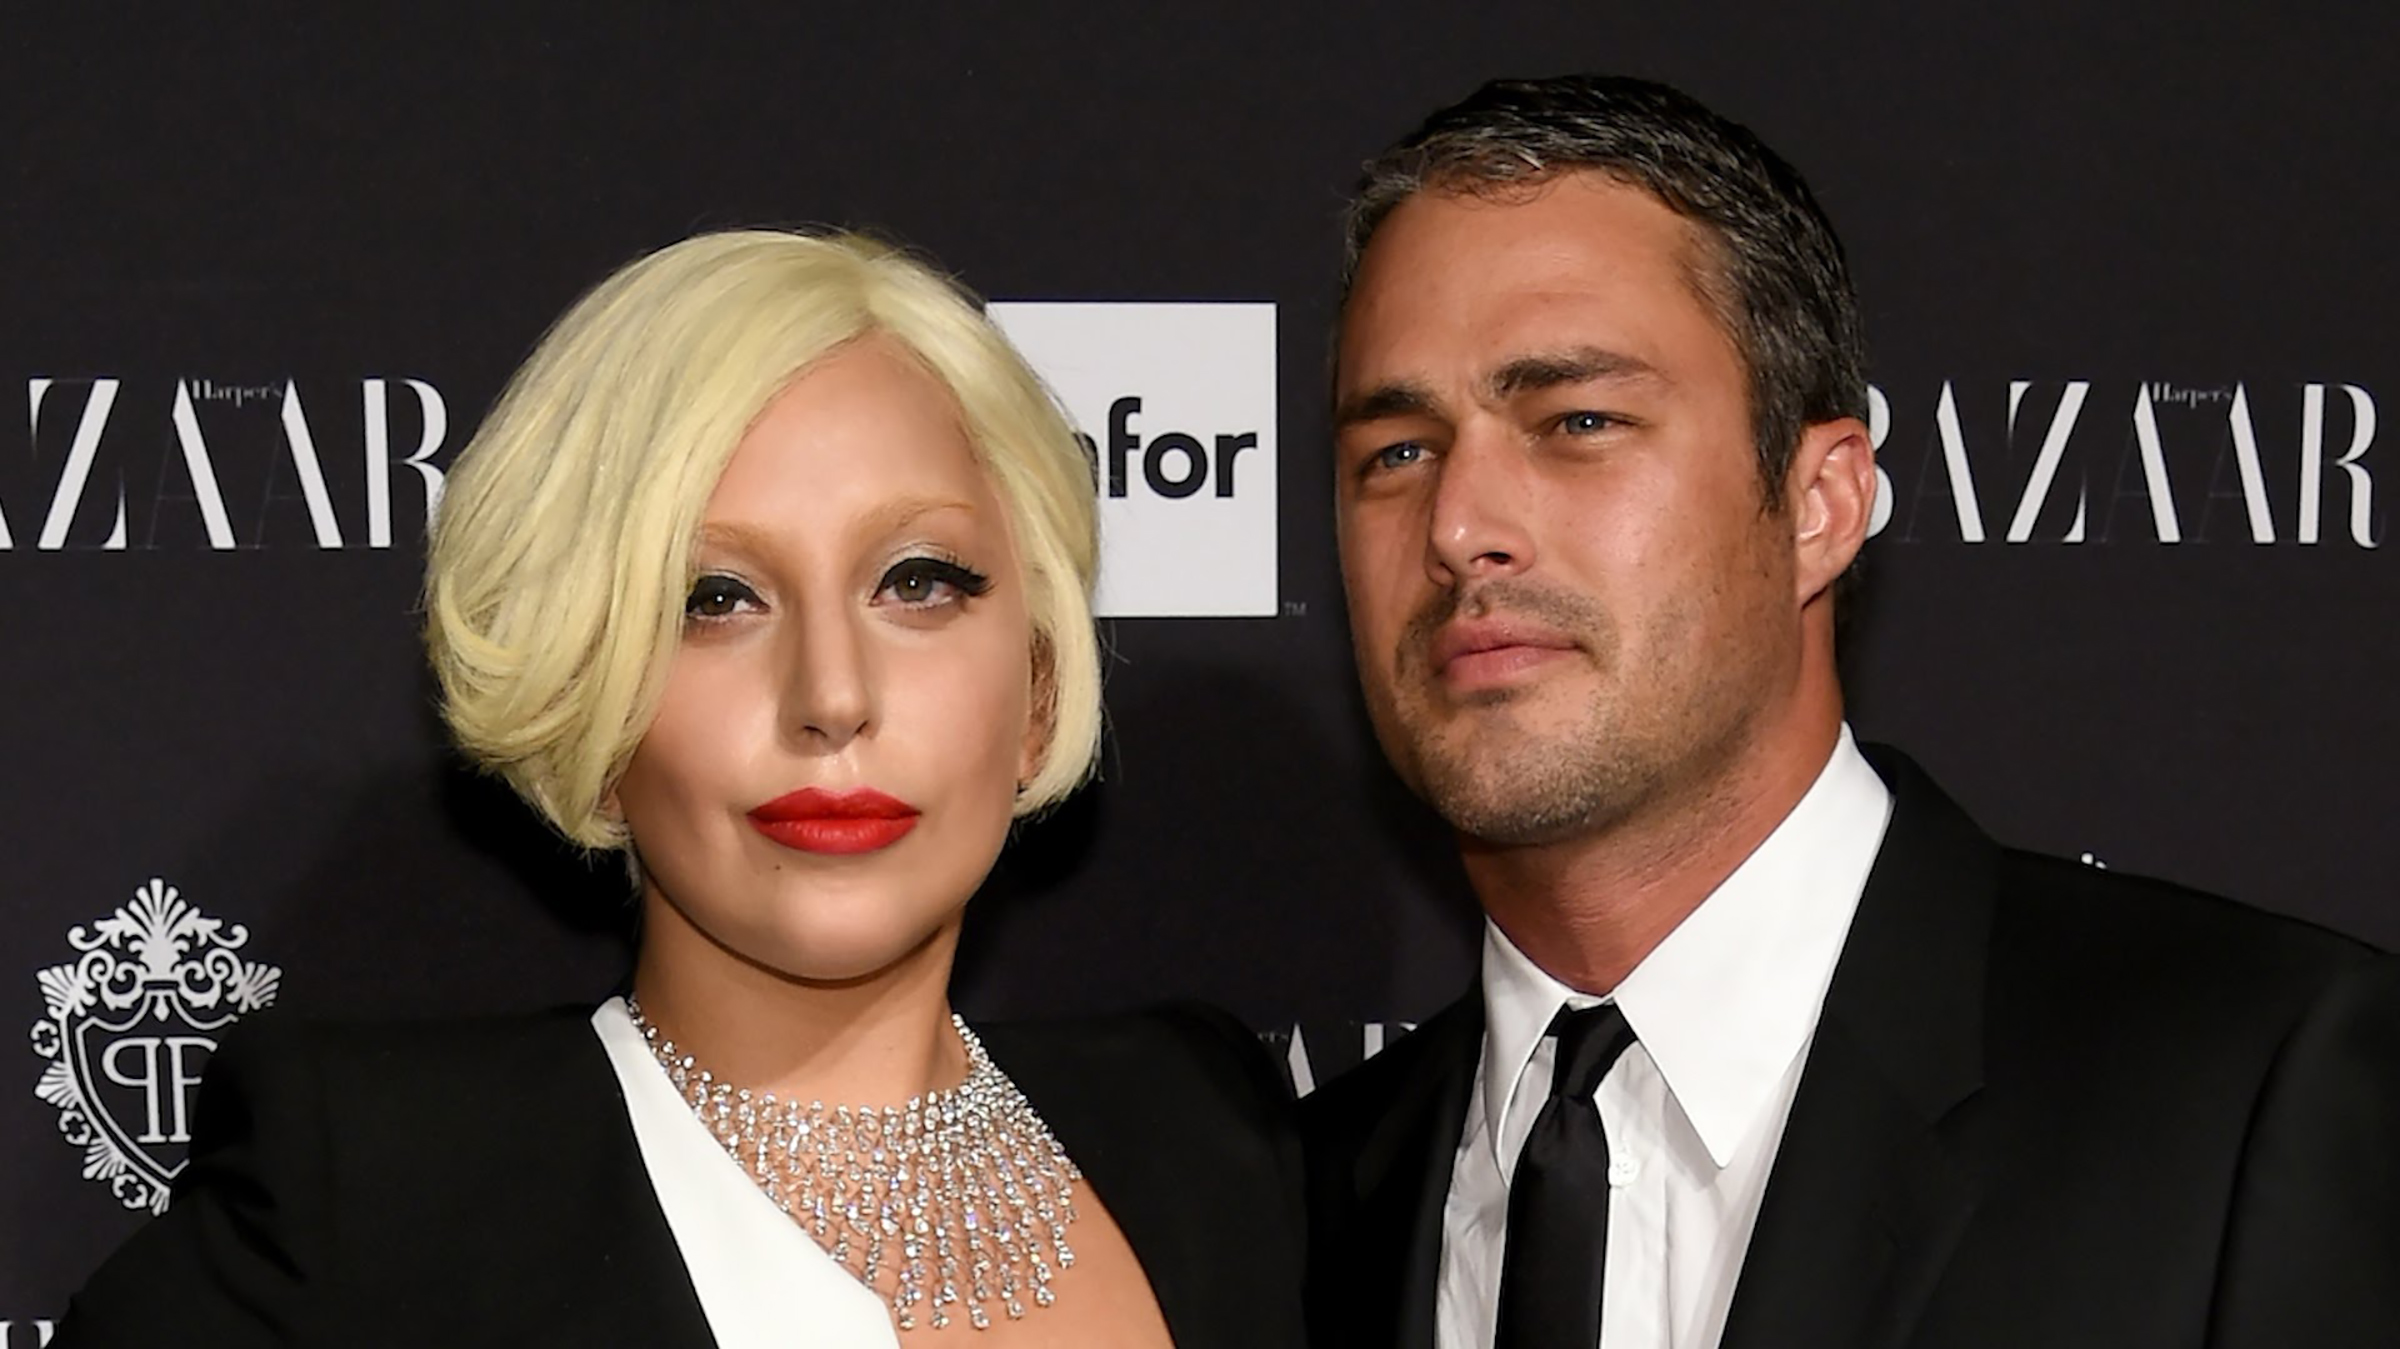 Lady gaga and taylor kinney home